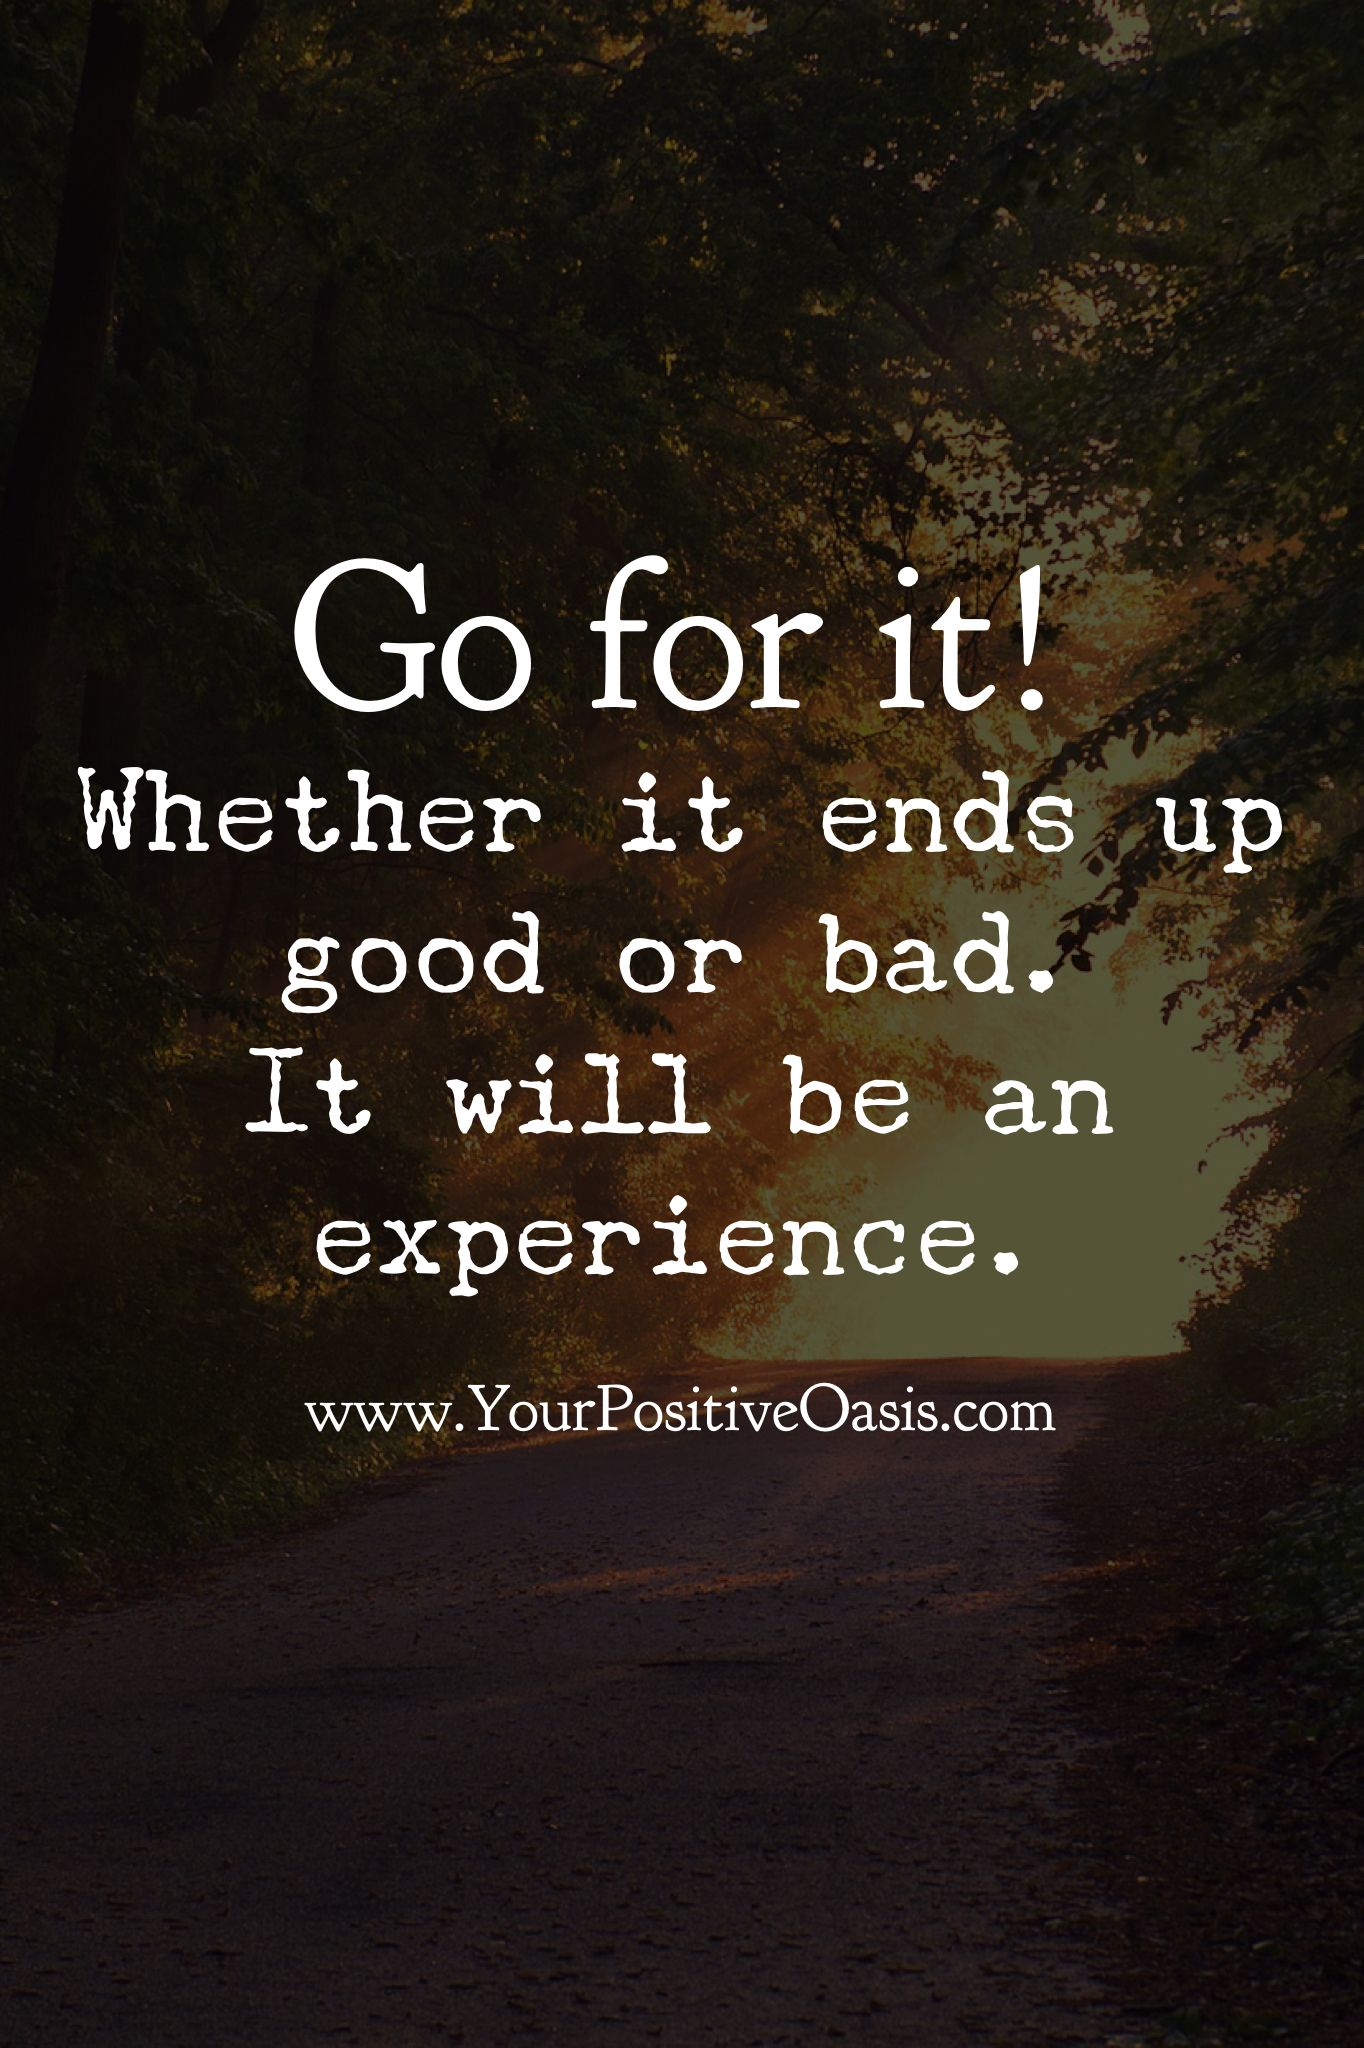 Quotes Archives  Life quotes, Positive quotes, Quotations